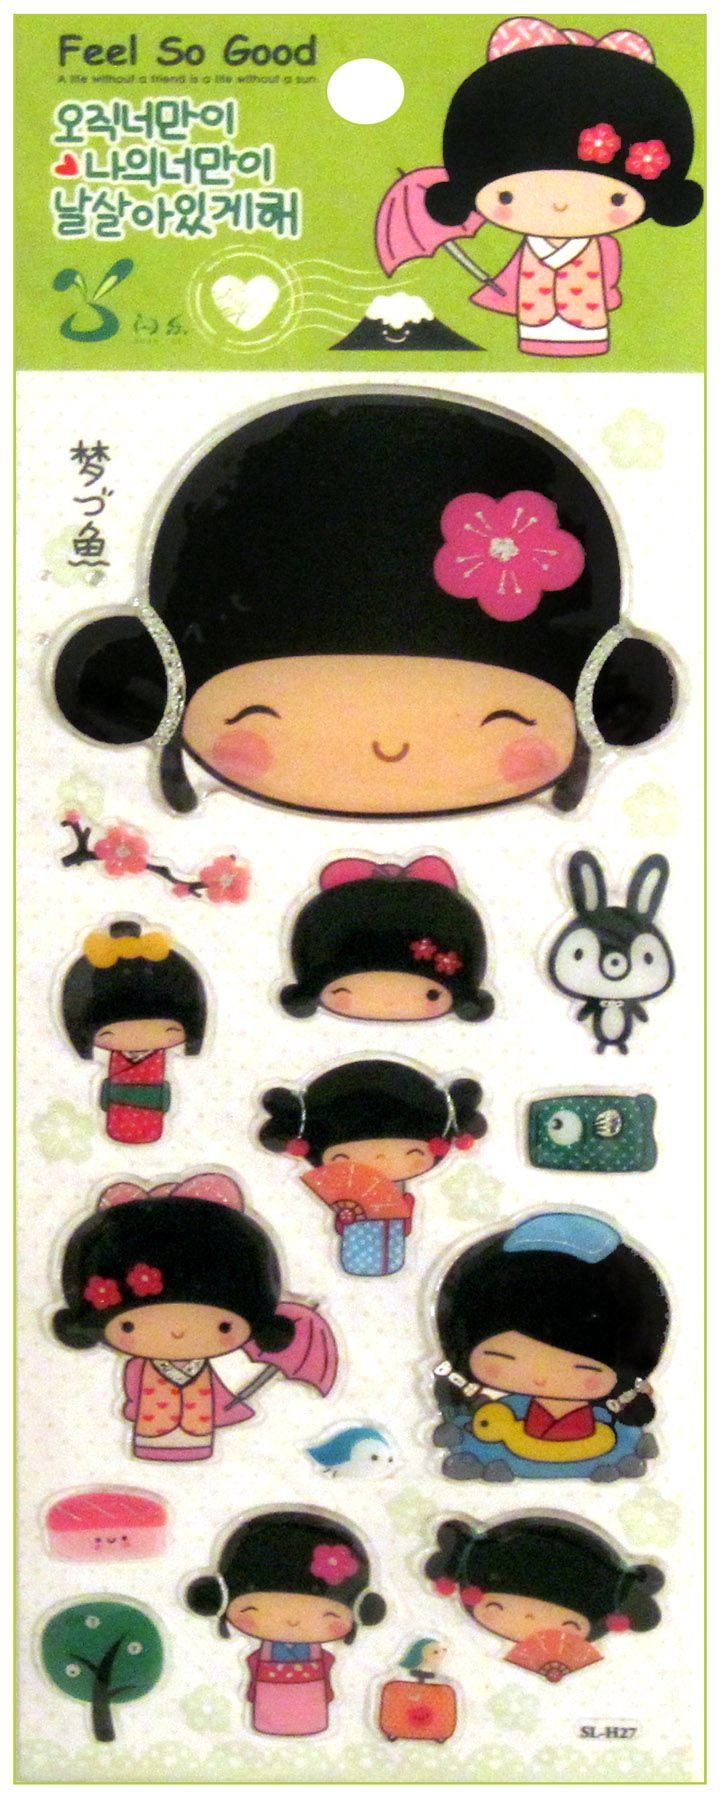 Aiko Kokeshi Doll Gel Kawaii Sticker Sheet: Green